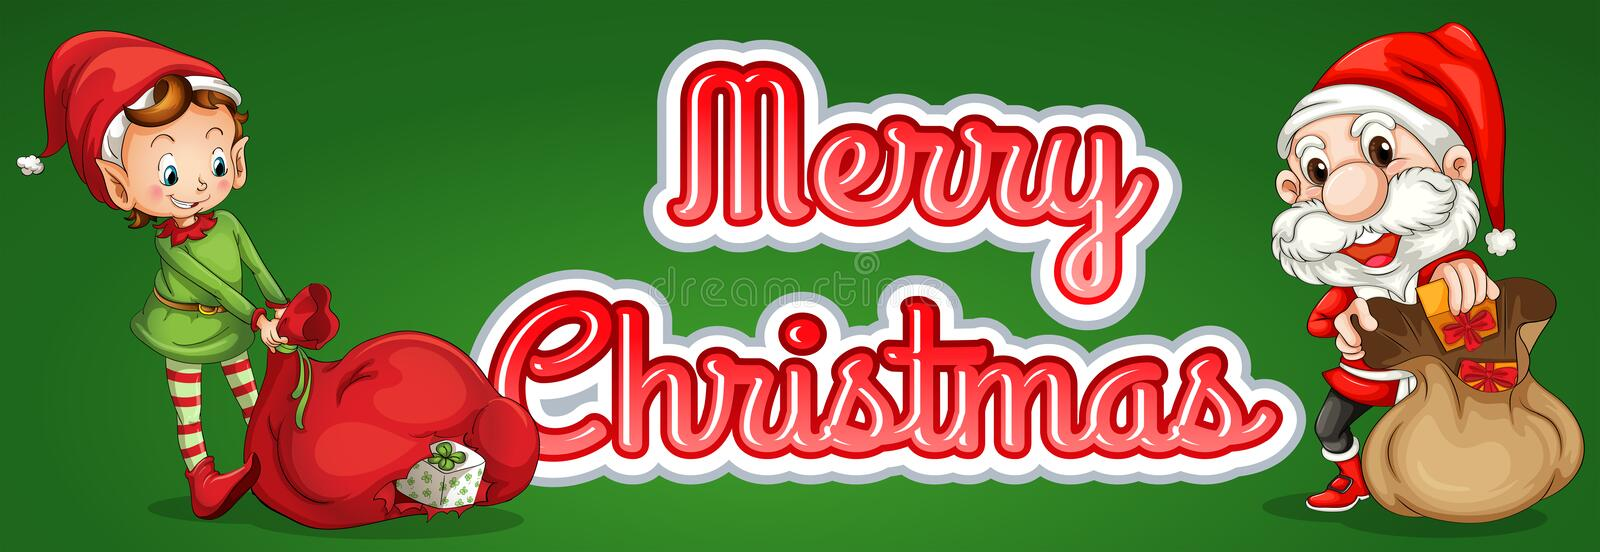 Christmas text. Merry Christmas theme sticker with elf and santa royalty free illustration